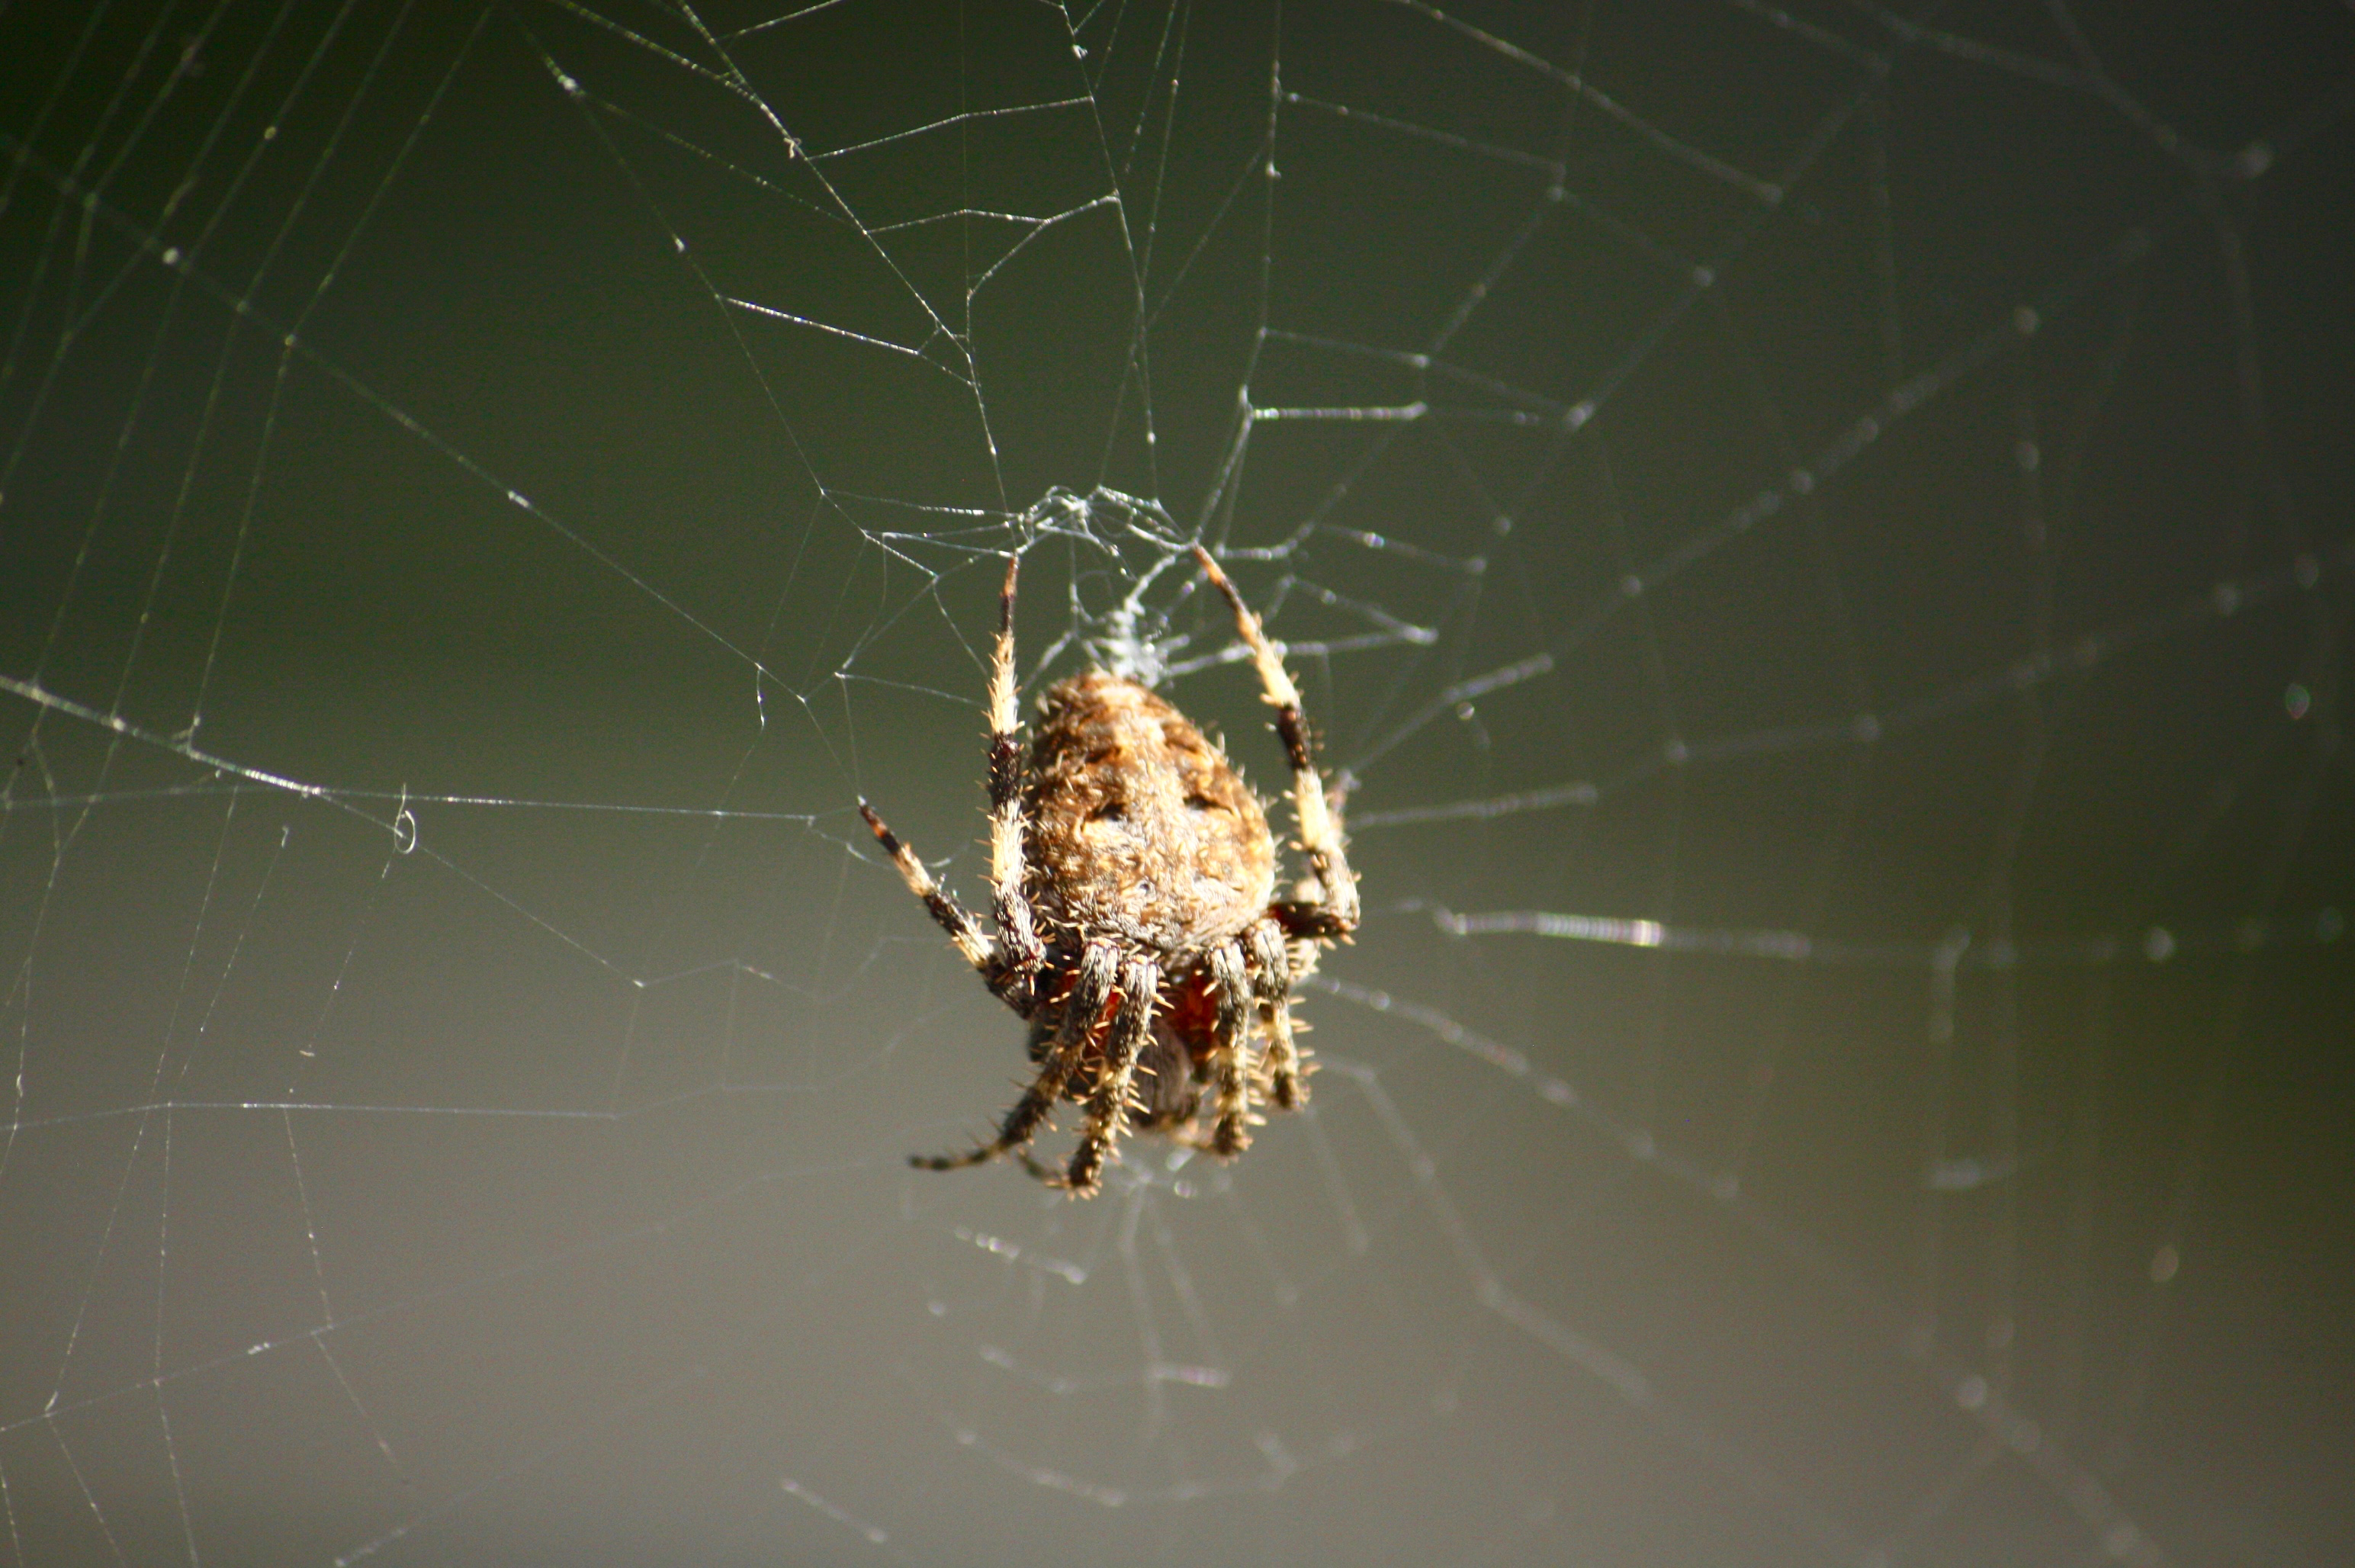 The spider, perhaps a Spotted Orbweaver, was about the size of a half dollar coin.